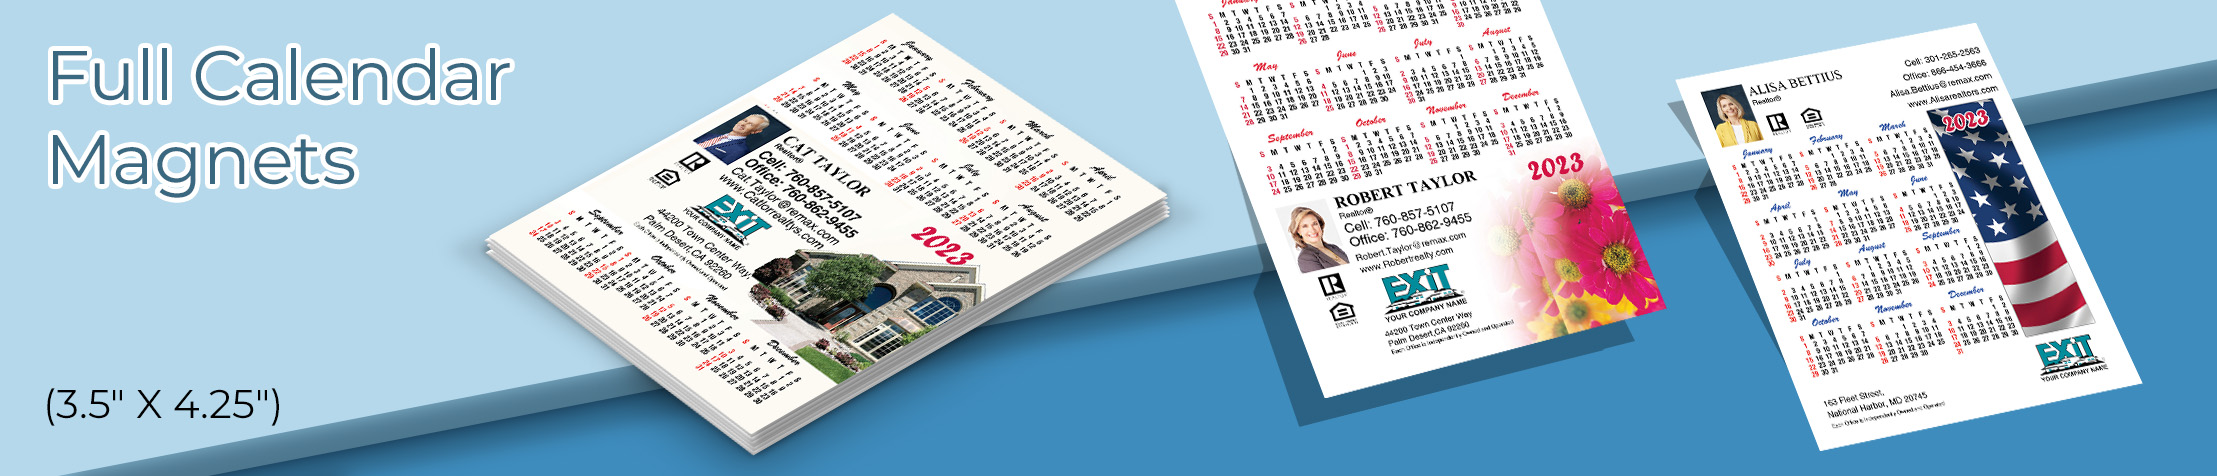 "Exit Realty Full Calendar Magnets - Exit Realty approved vendor 2019 calendars, 3.5"" by 4.25"" 